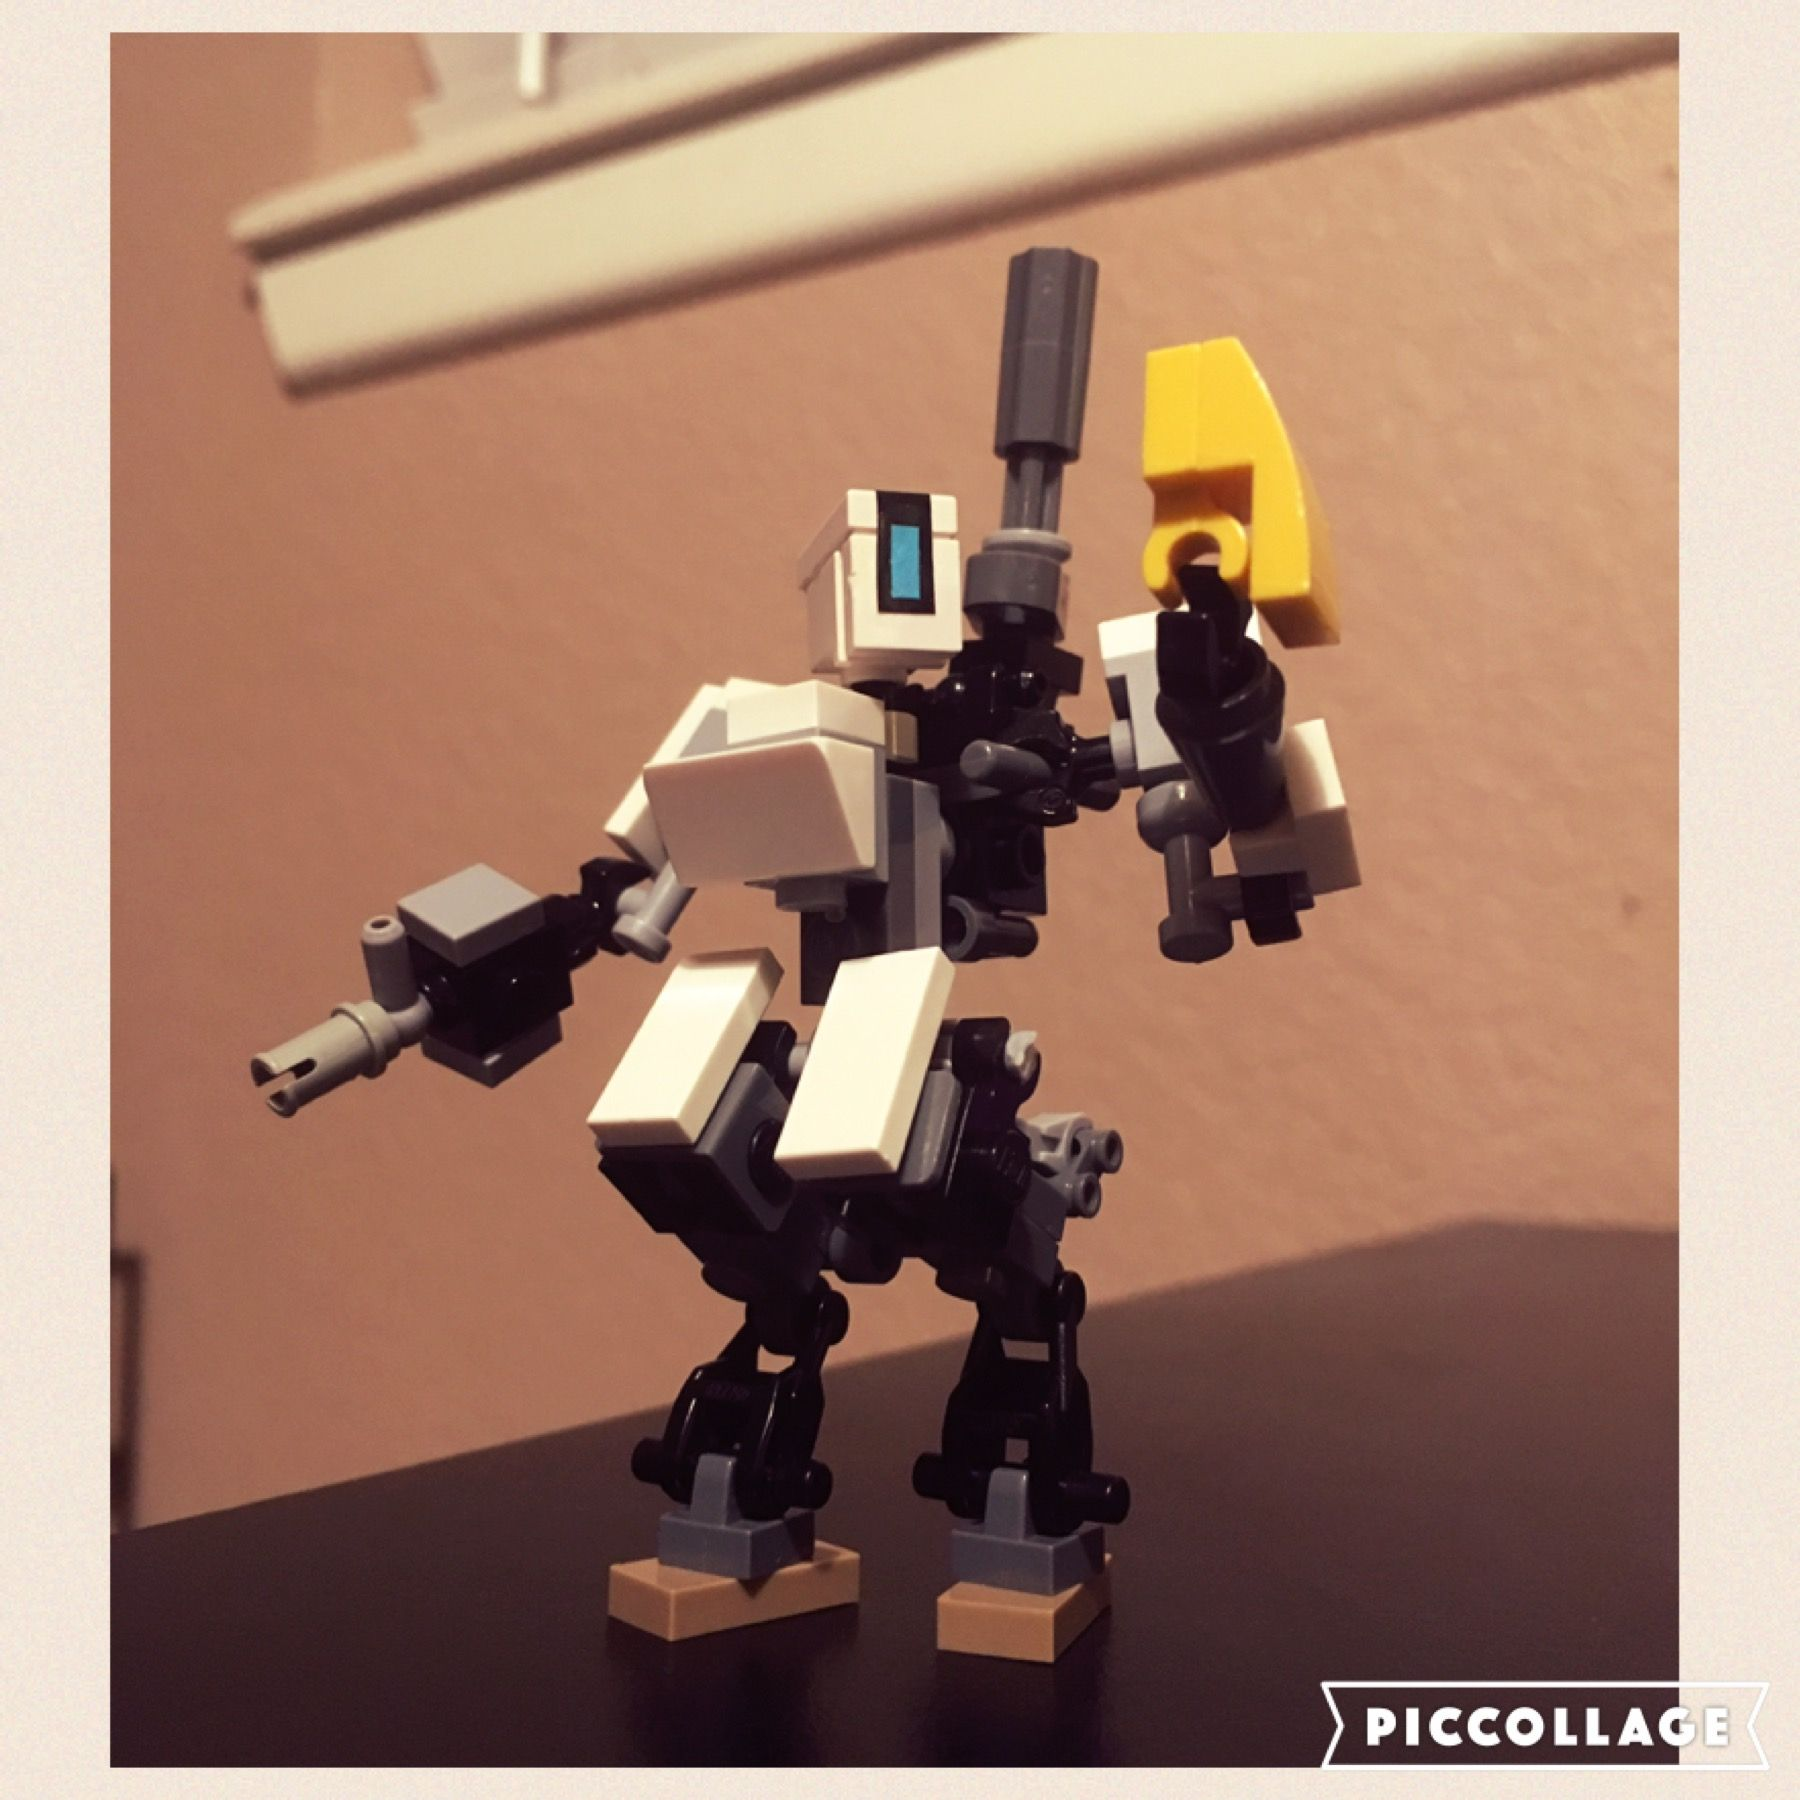 I Made A Lego Bastion From Overwatch Enjoy Lego Overwatch